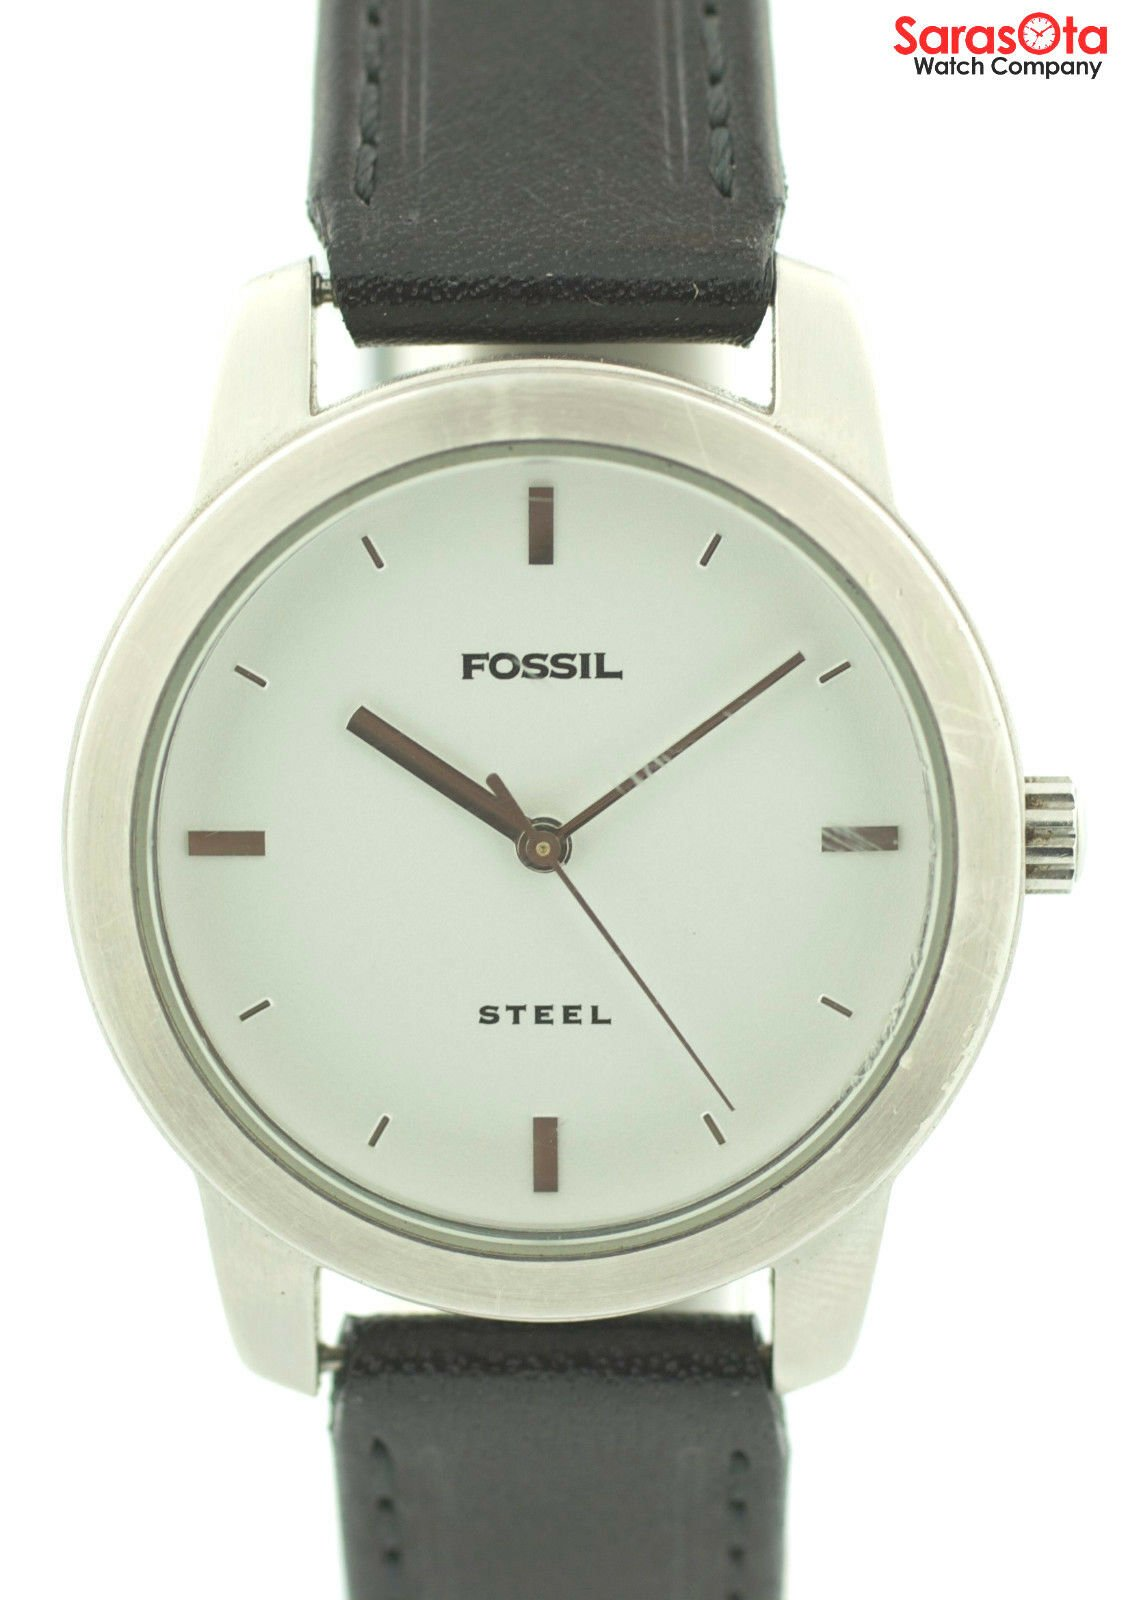 Fossil FS 2661 White Dial Stainless Steel Black Leather Quartz Womens Watch 121773030002 2